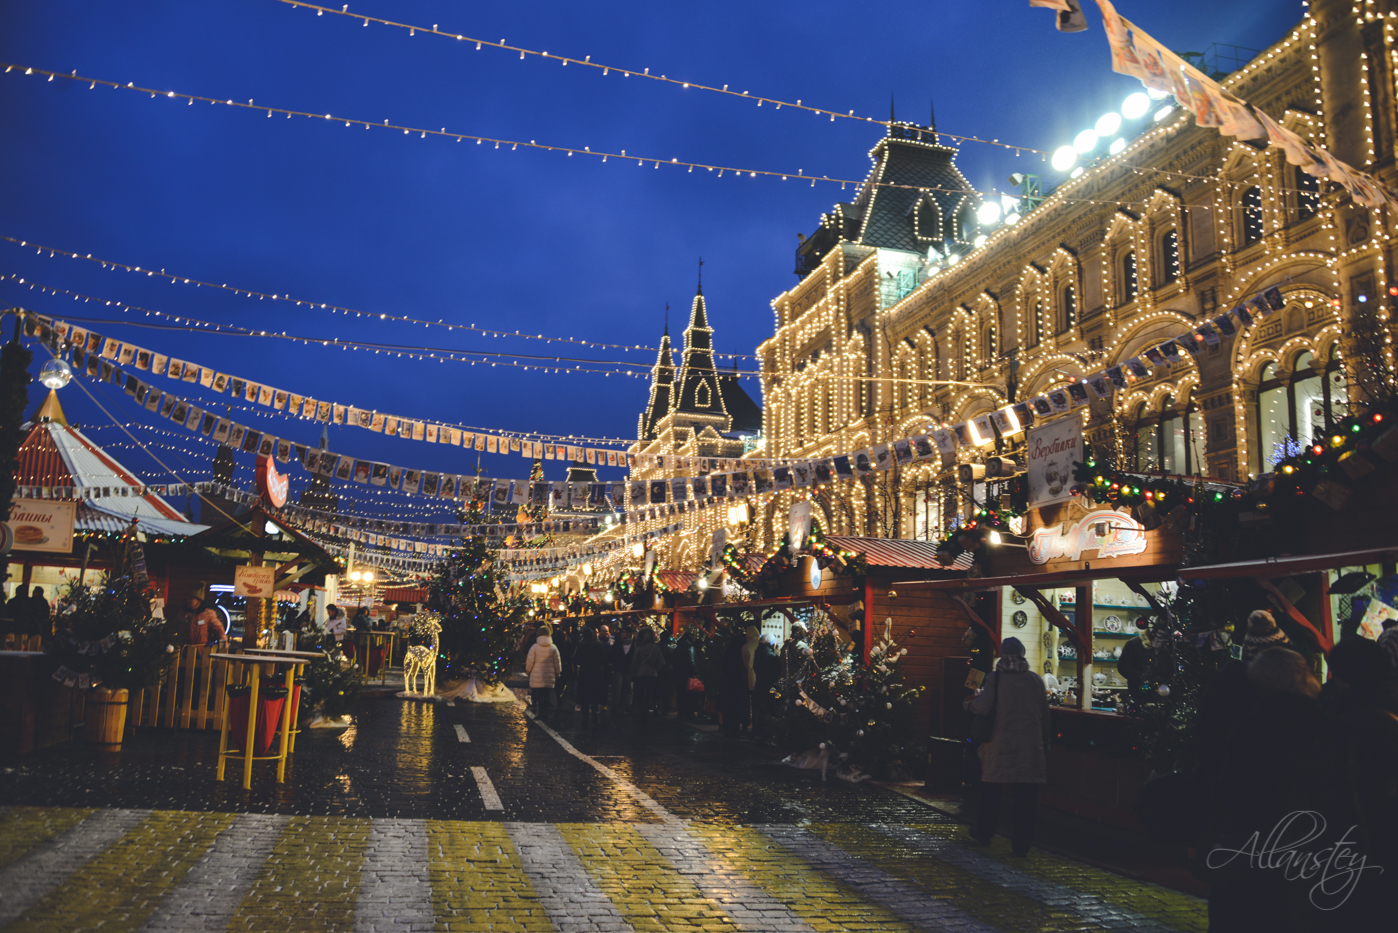 GUM Christmas Market on Red Square